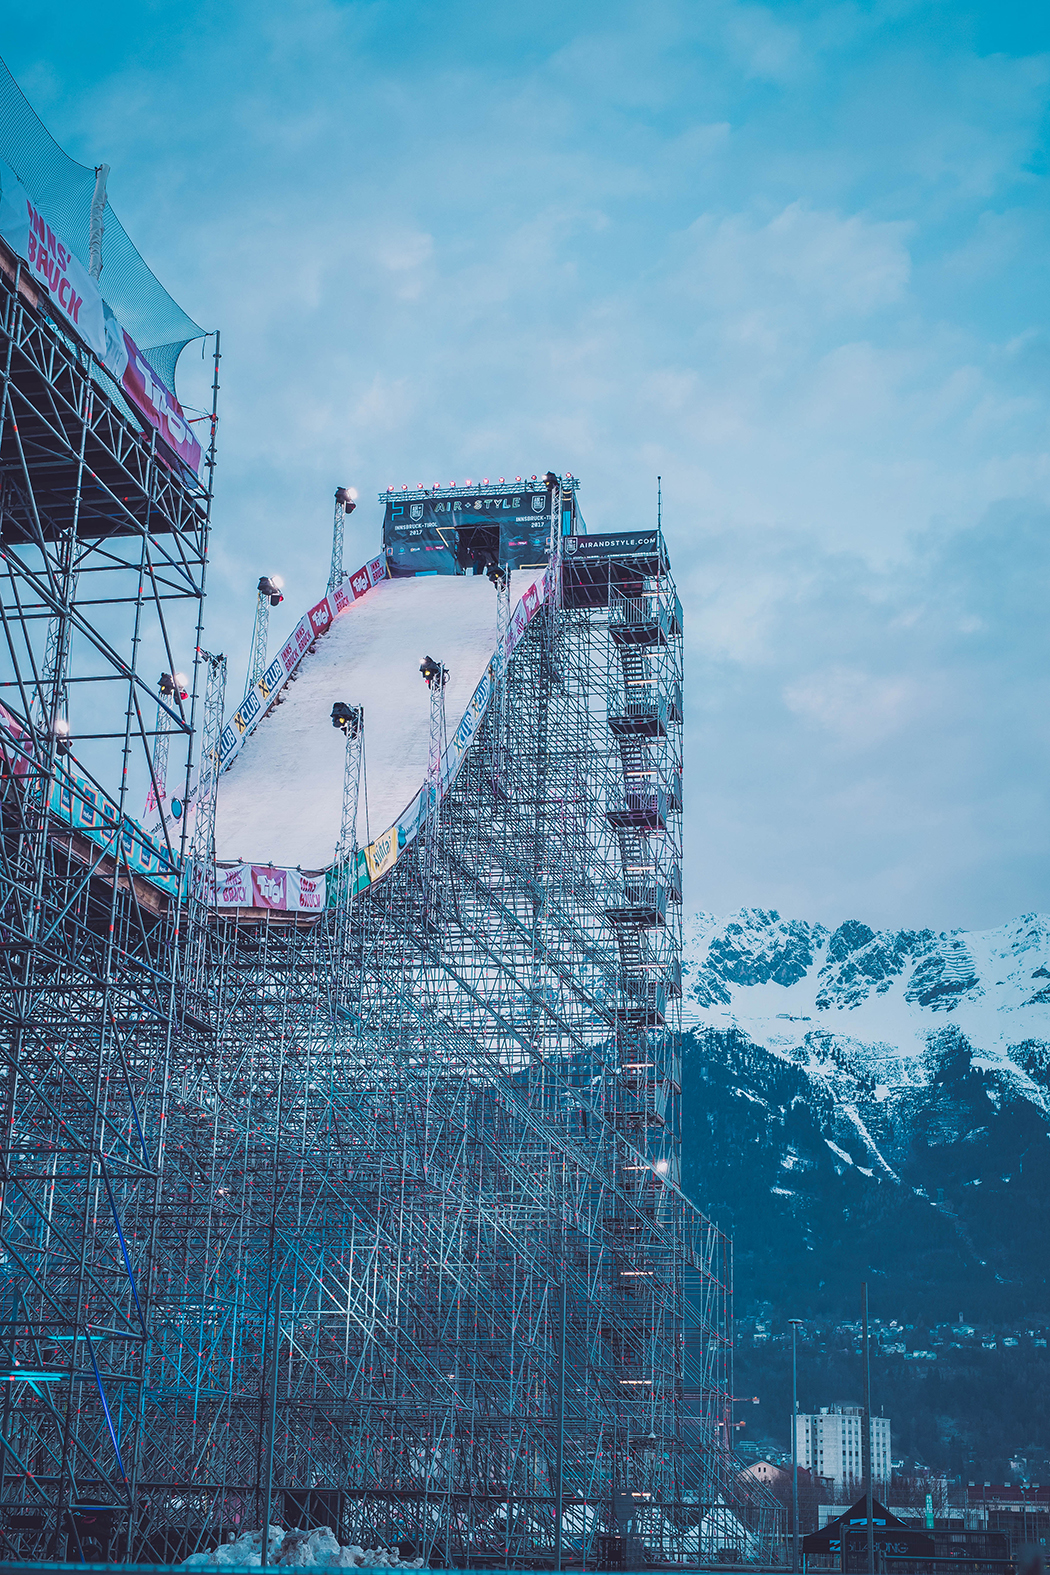 Lifestyleblog-Lifestyleblogger-Lifestyle-Blog-Blogger-AirandStyle-Air-and-Style-Innsbruck-2017-Lindarella-6